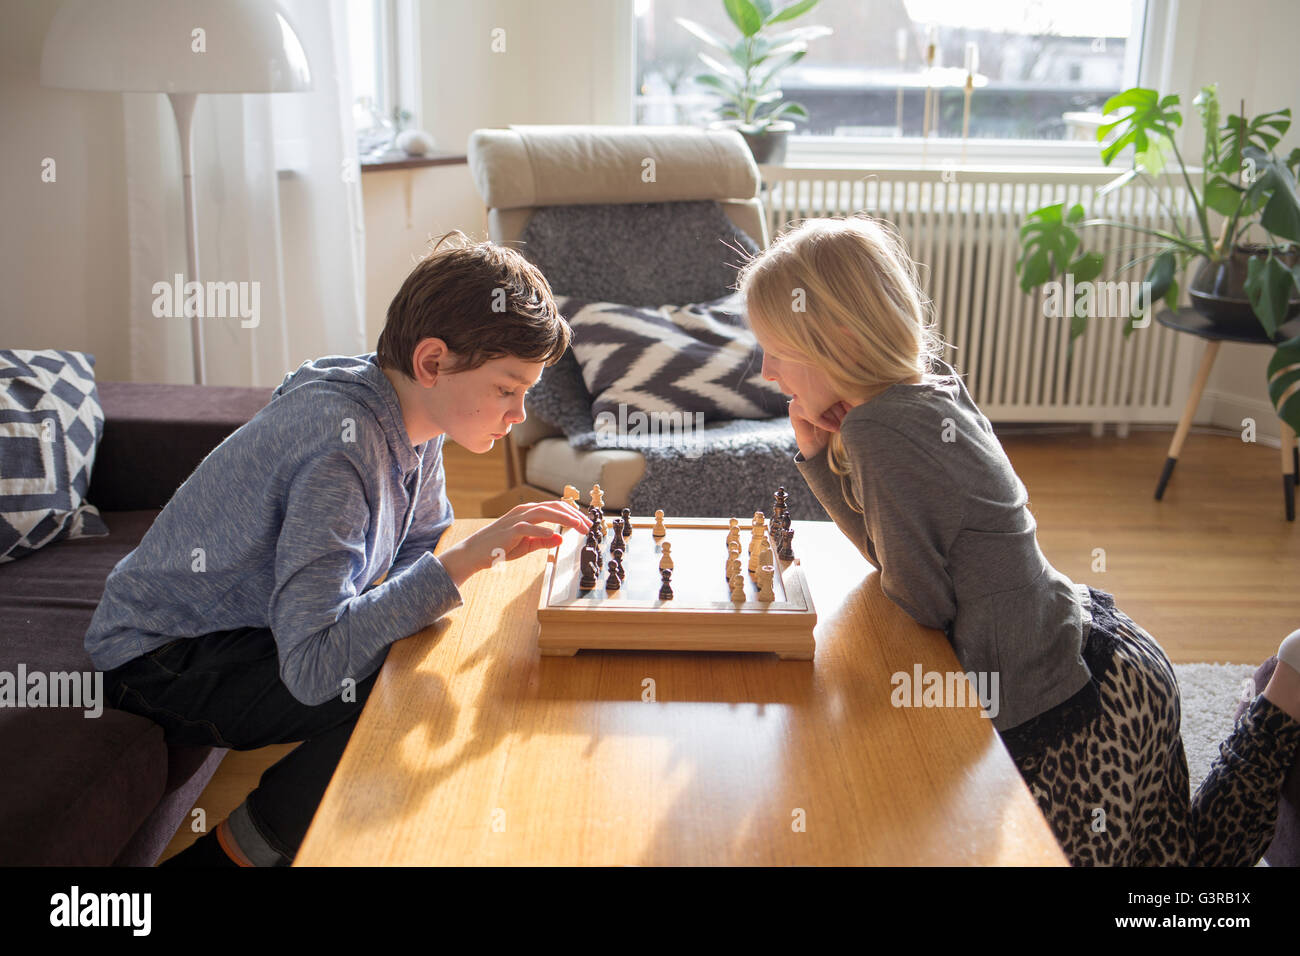 Sweden, Boy (12-13) and girl (10-11) playing chess in living room - Stock Image